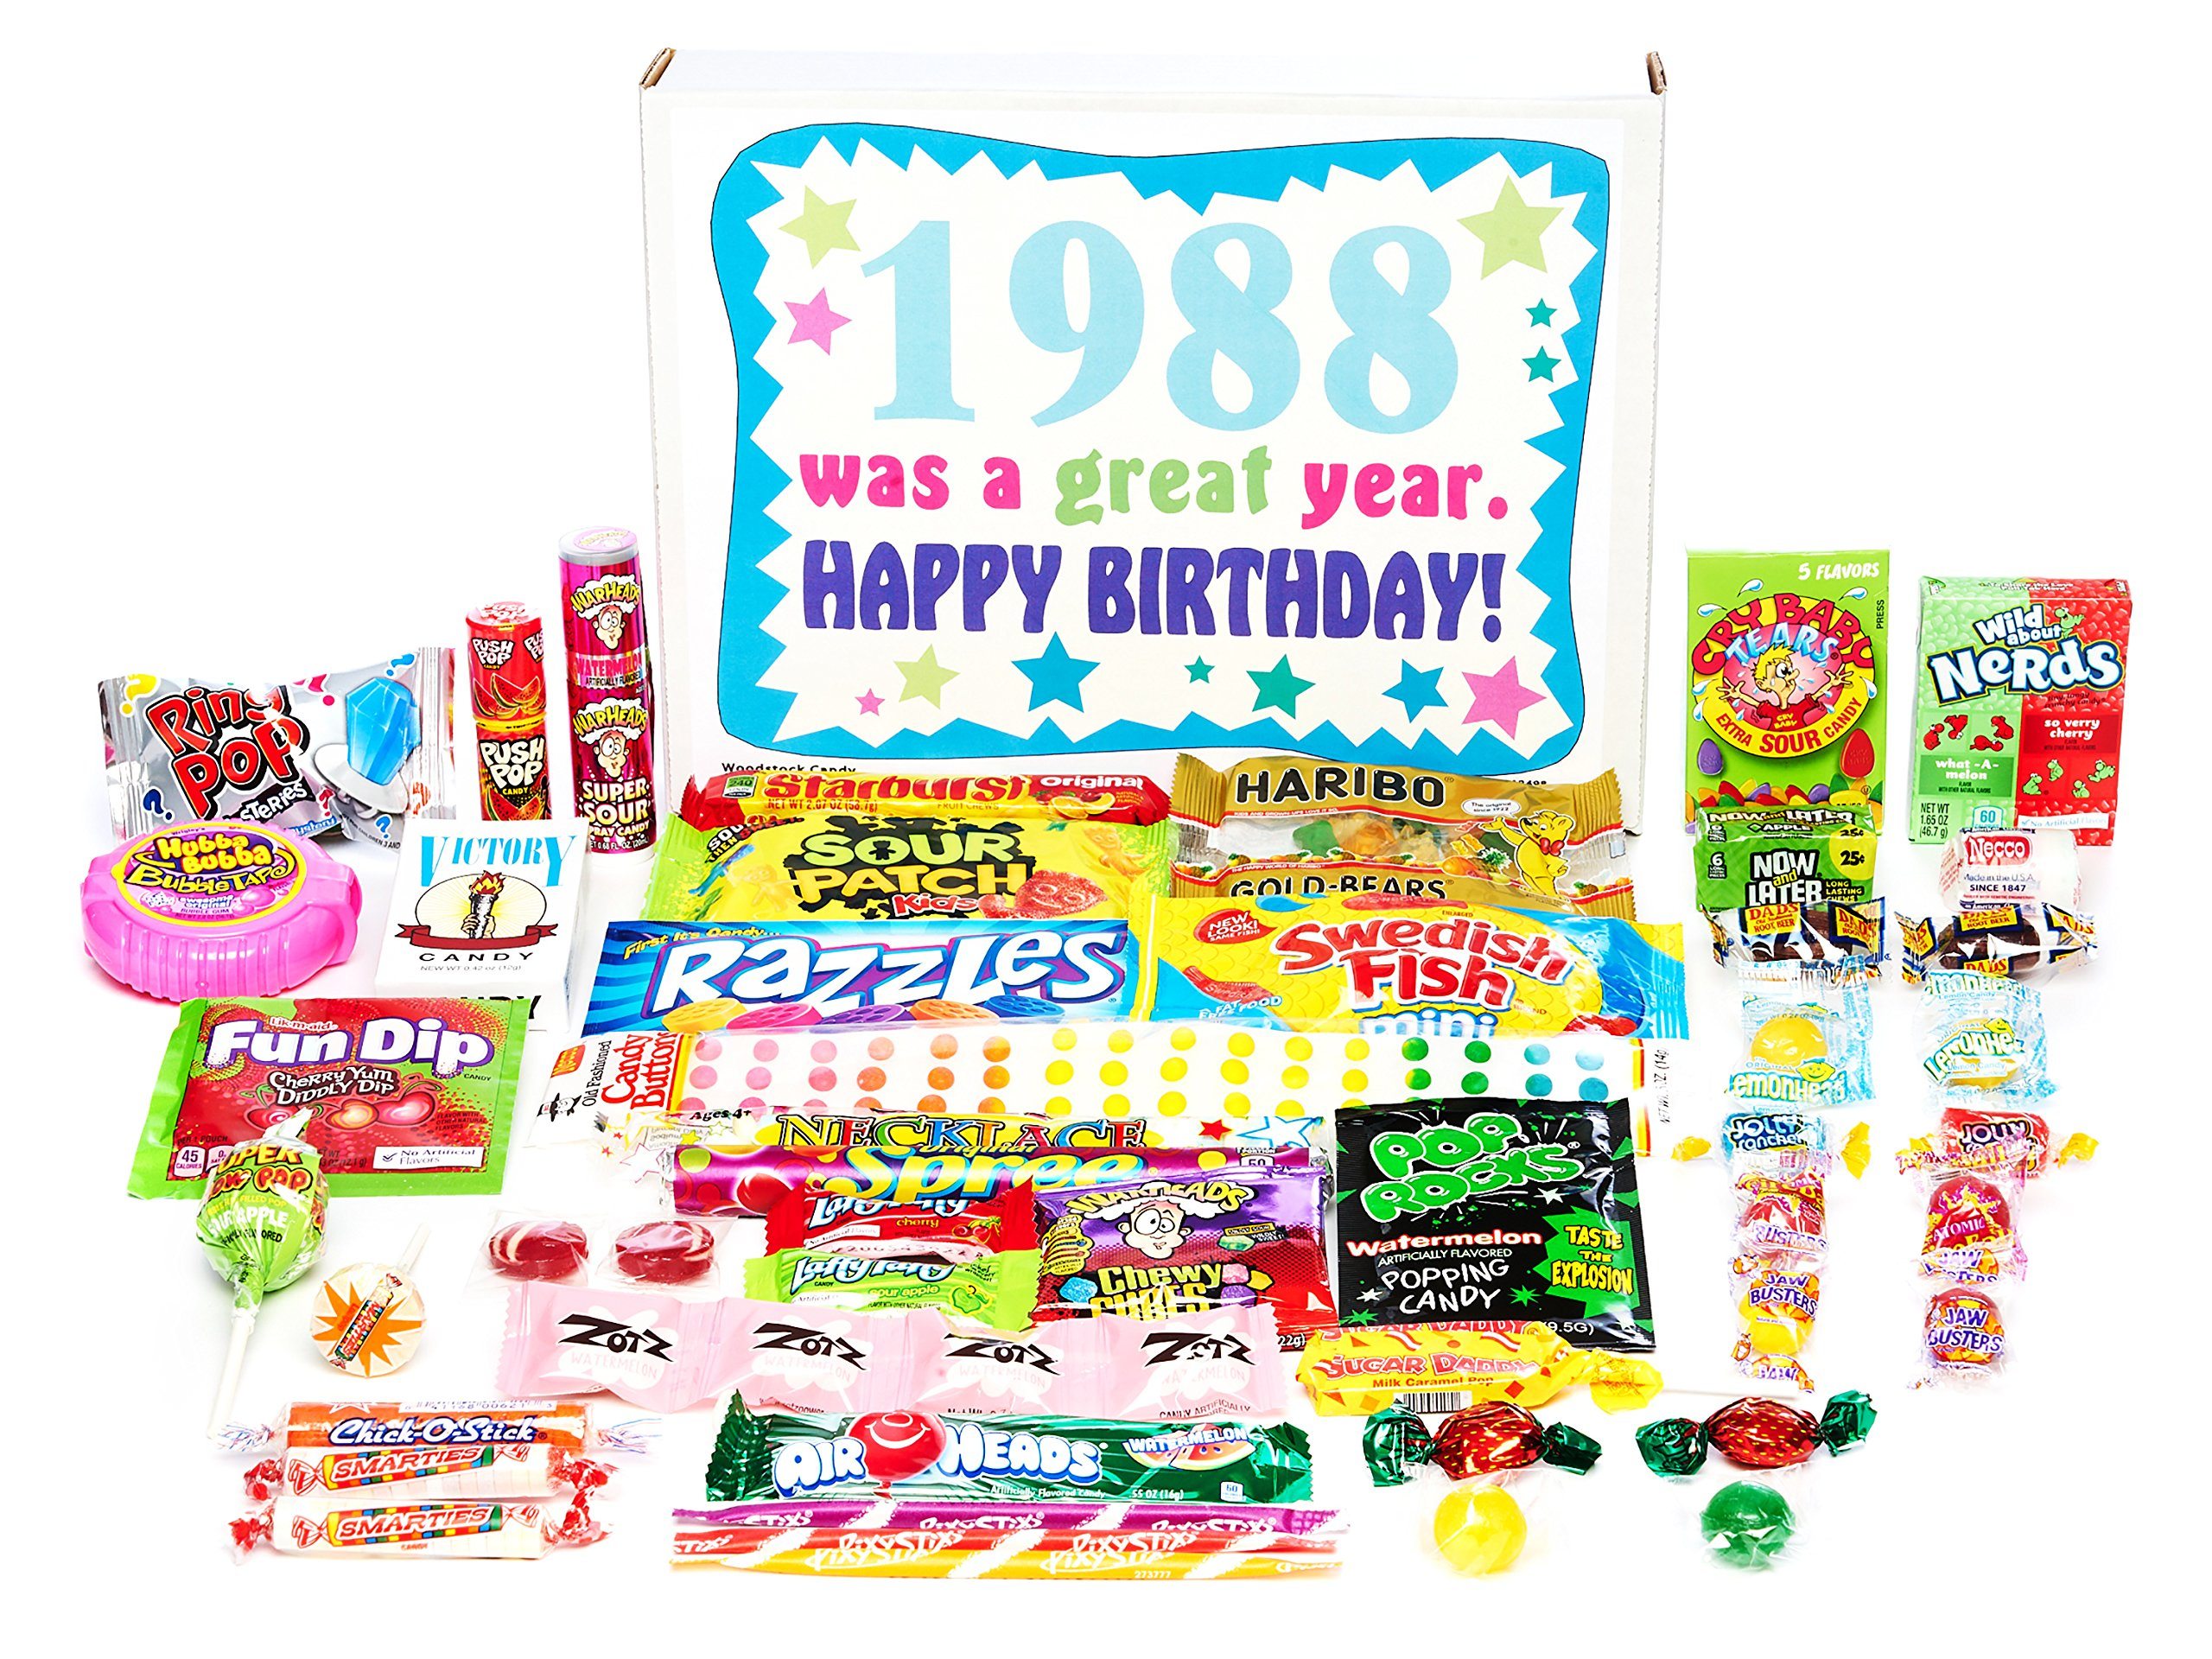 Woodstock Candy ~ 1988 31st Birthday Gift Box of Retro Nostalgic Candy from Childhood for 31 Year Old Man or Woman Born 1988